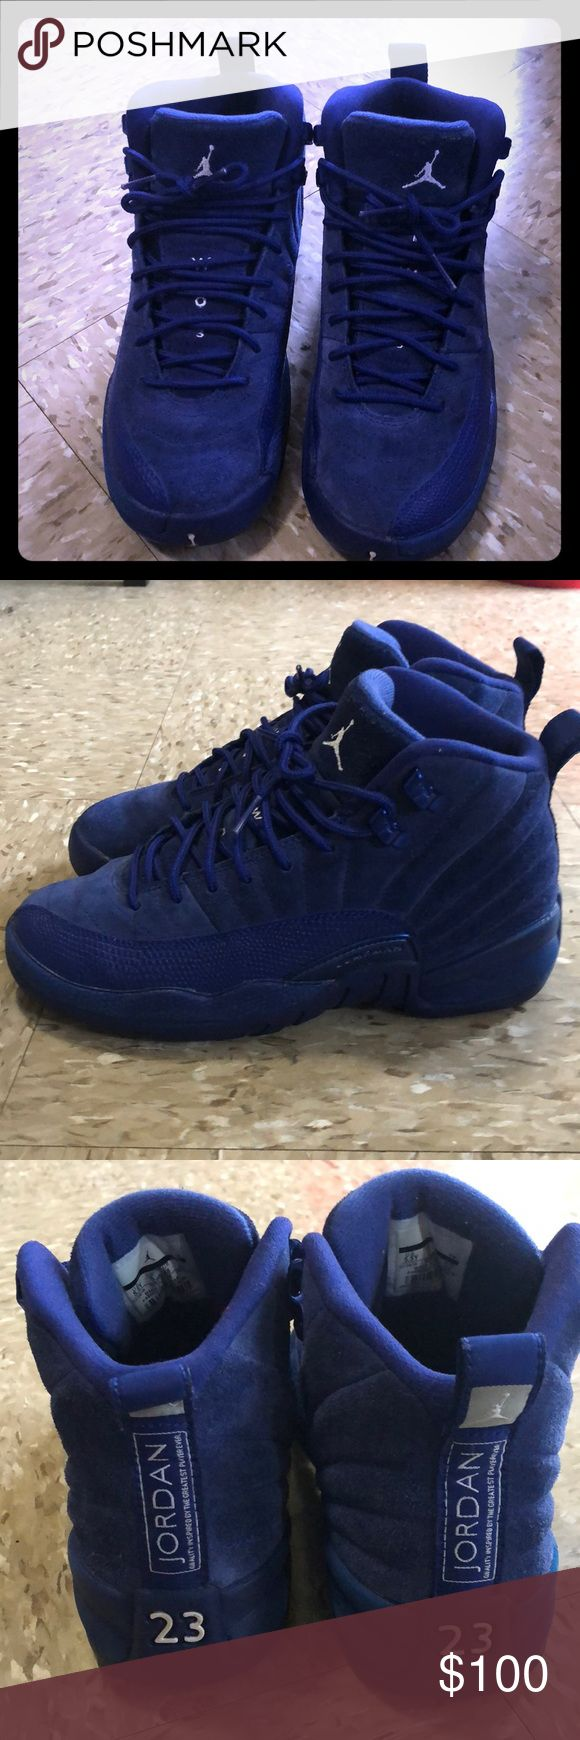 """Retro """"Deep Royal Blue"""" Jordan 12 sz 5.5 !!Authentic!! Royal Blue 12s Gently Used Youth sz 5.5 Retails for $190 *No Lowballing No Trades* Jordan Shoes Sneakers"""